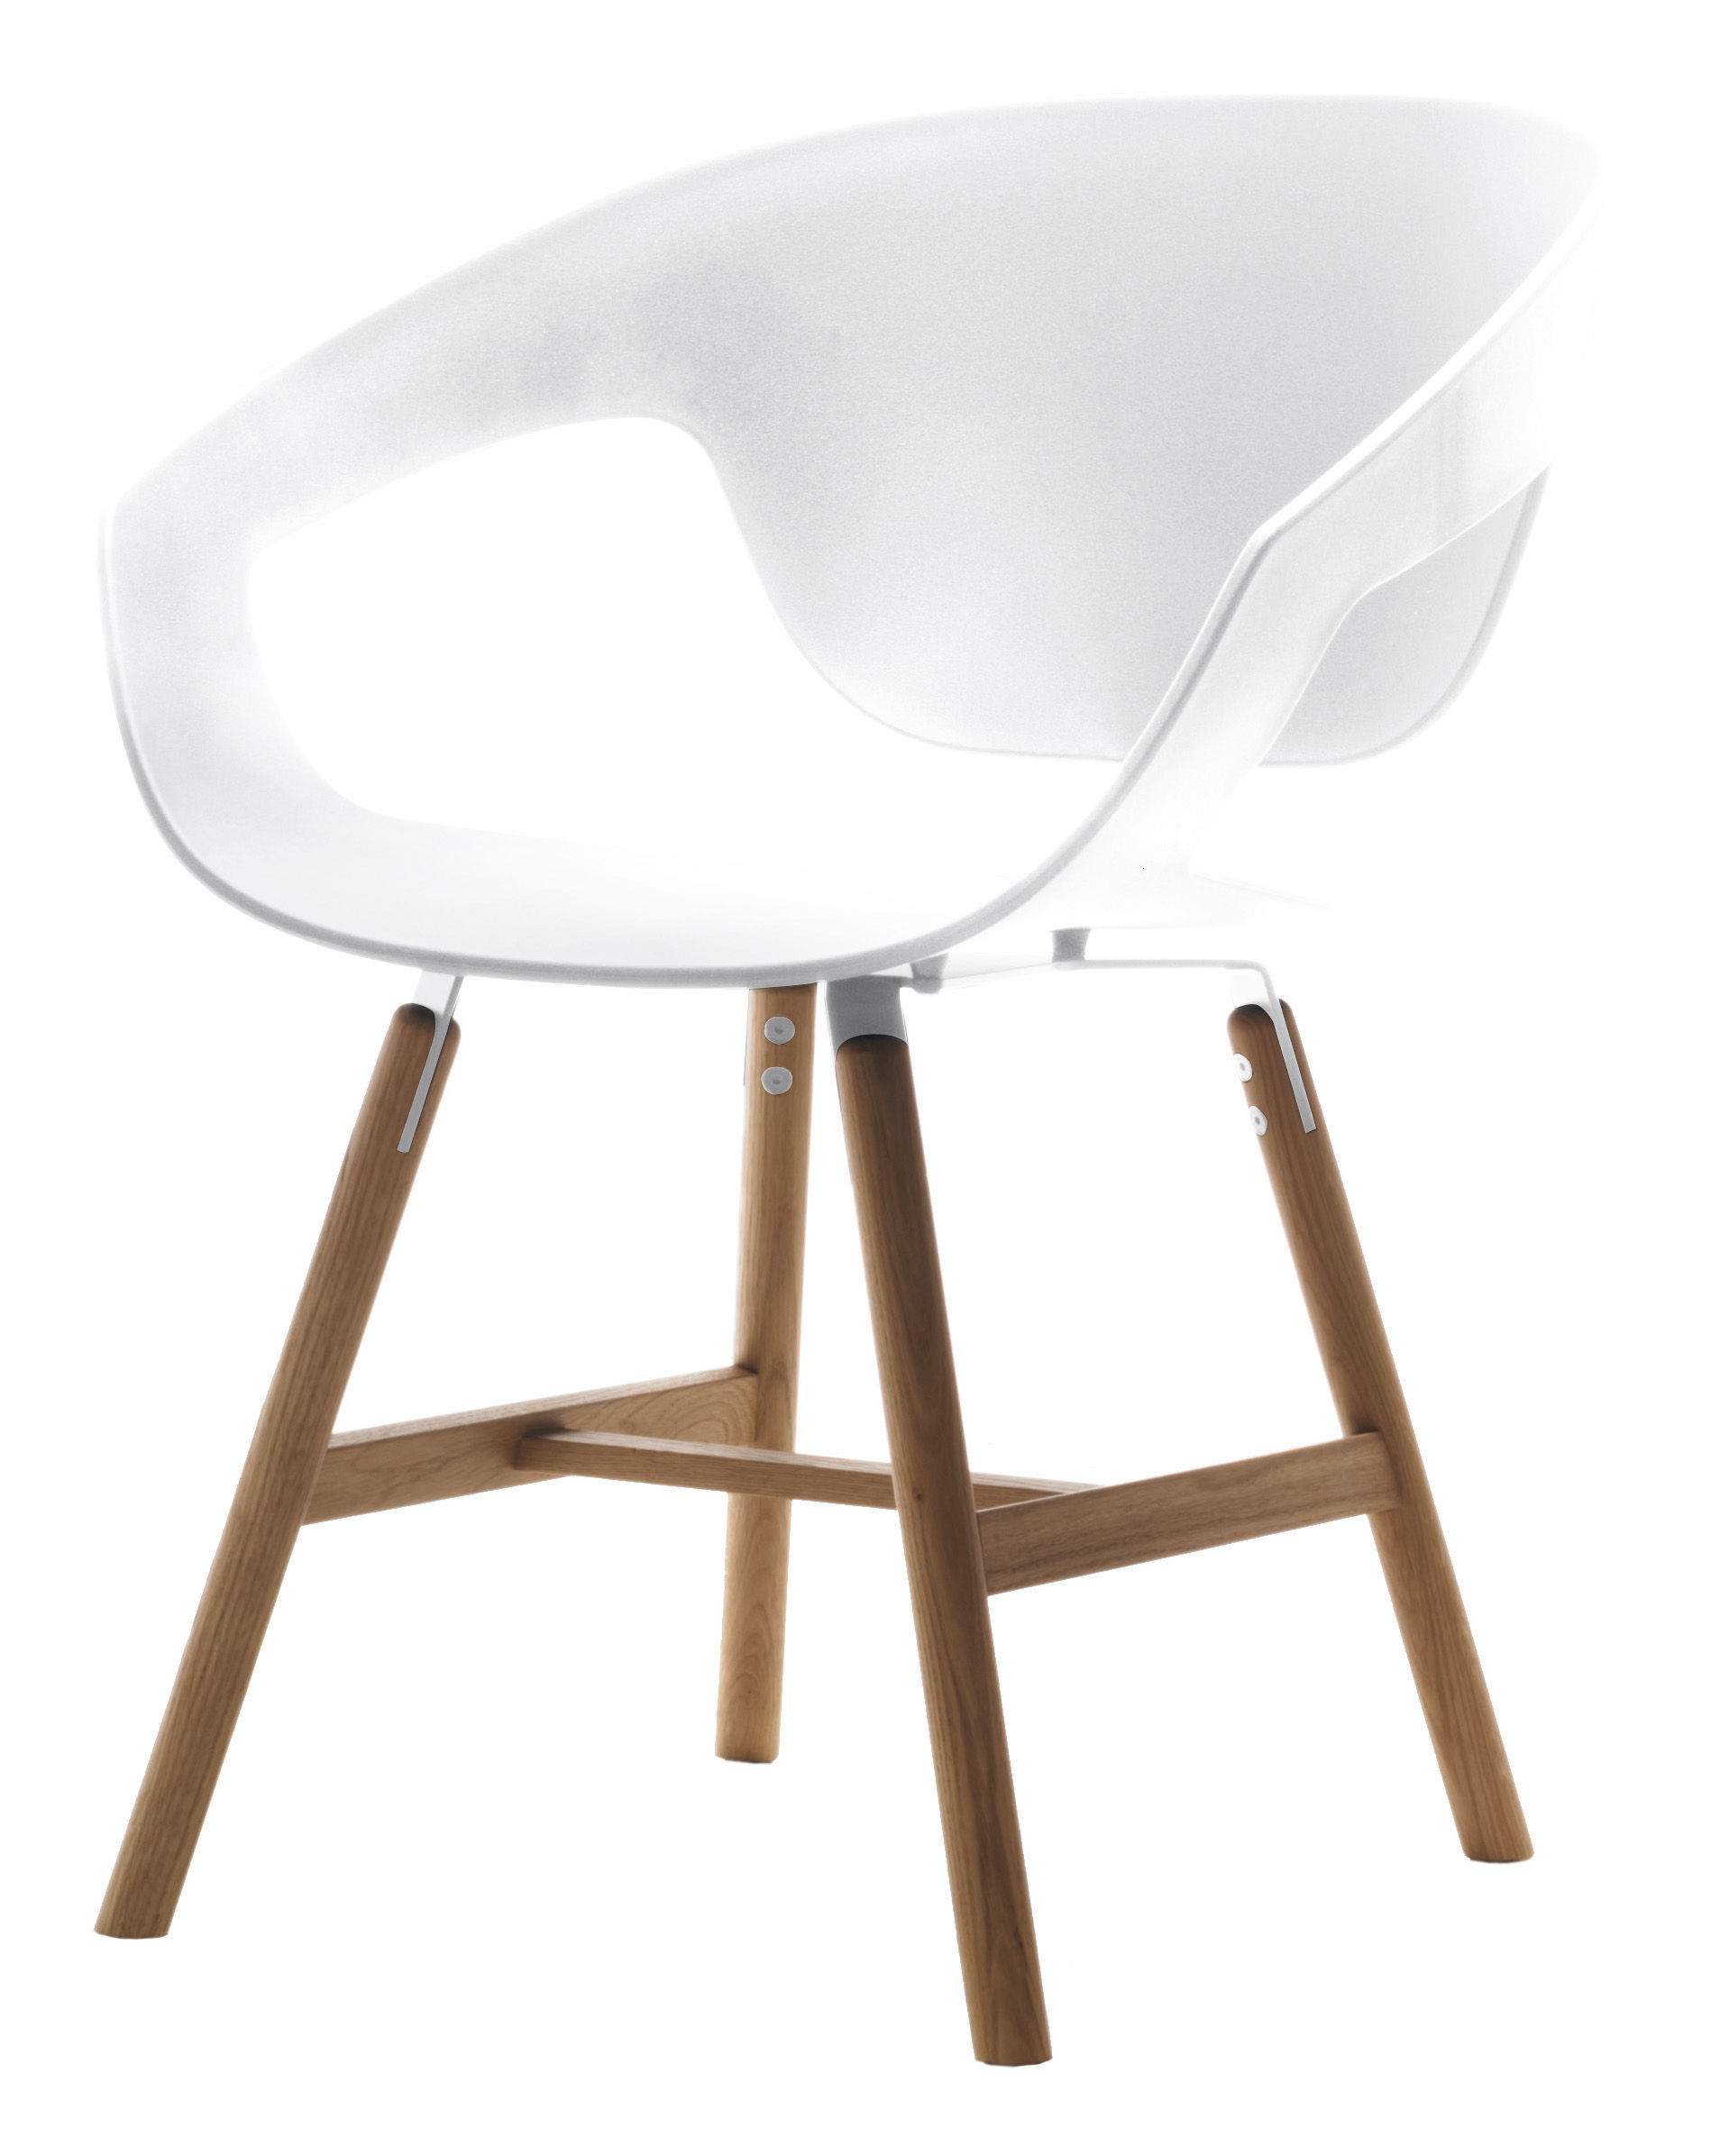 fauteuil vad wood plastique pieds bois blanc casamania made in design. Black Bedroom Furniture Sets. Home Design Ideas